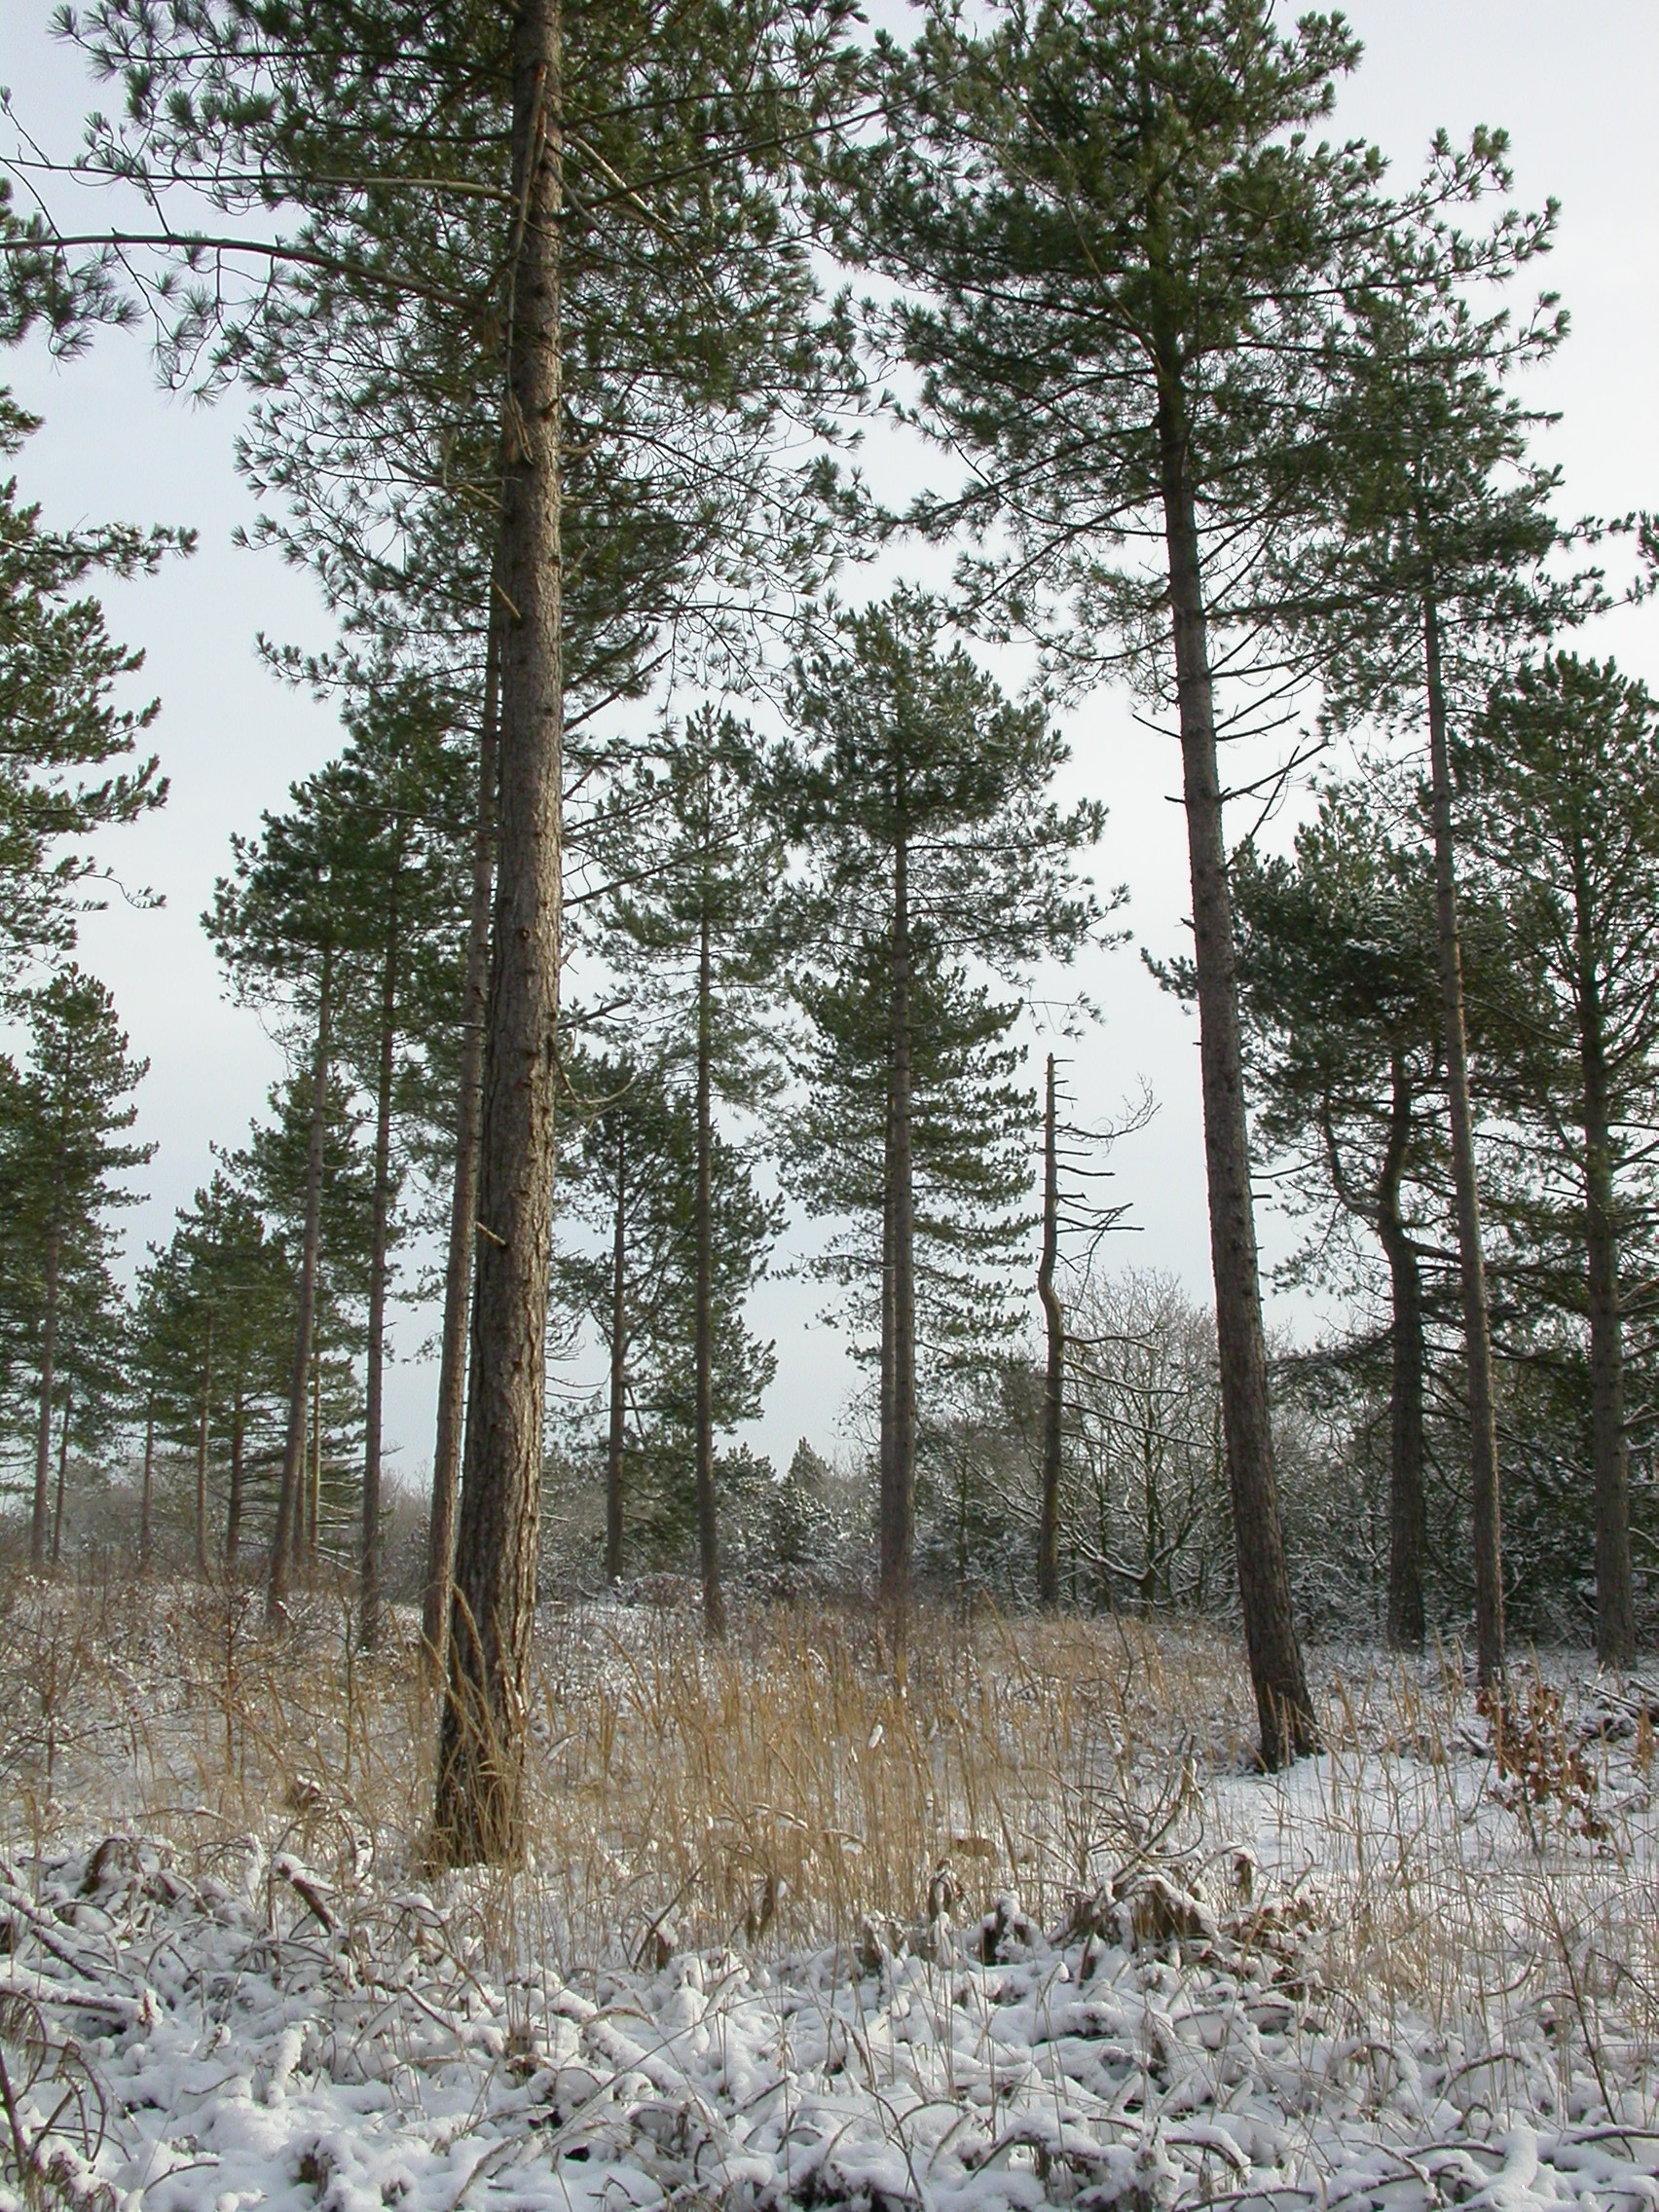 paul pine trees in the winter pines snow cold holland schoorl